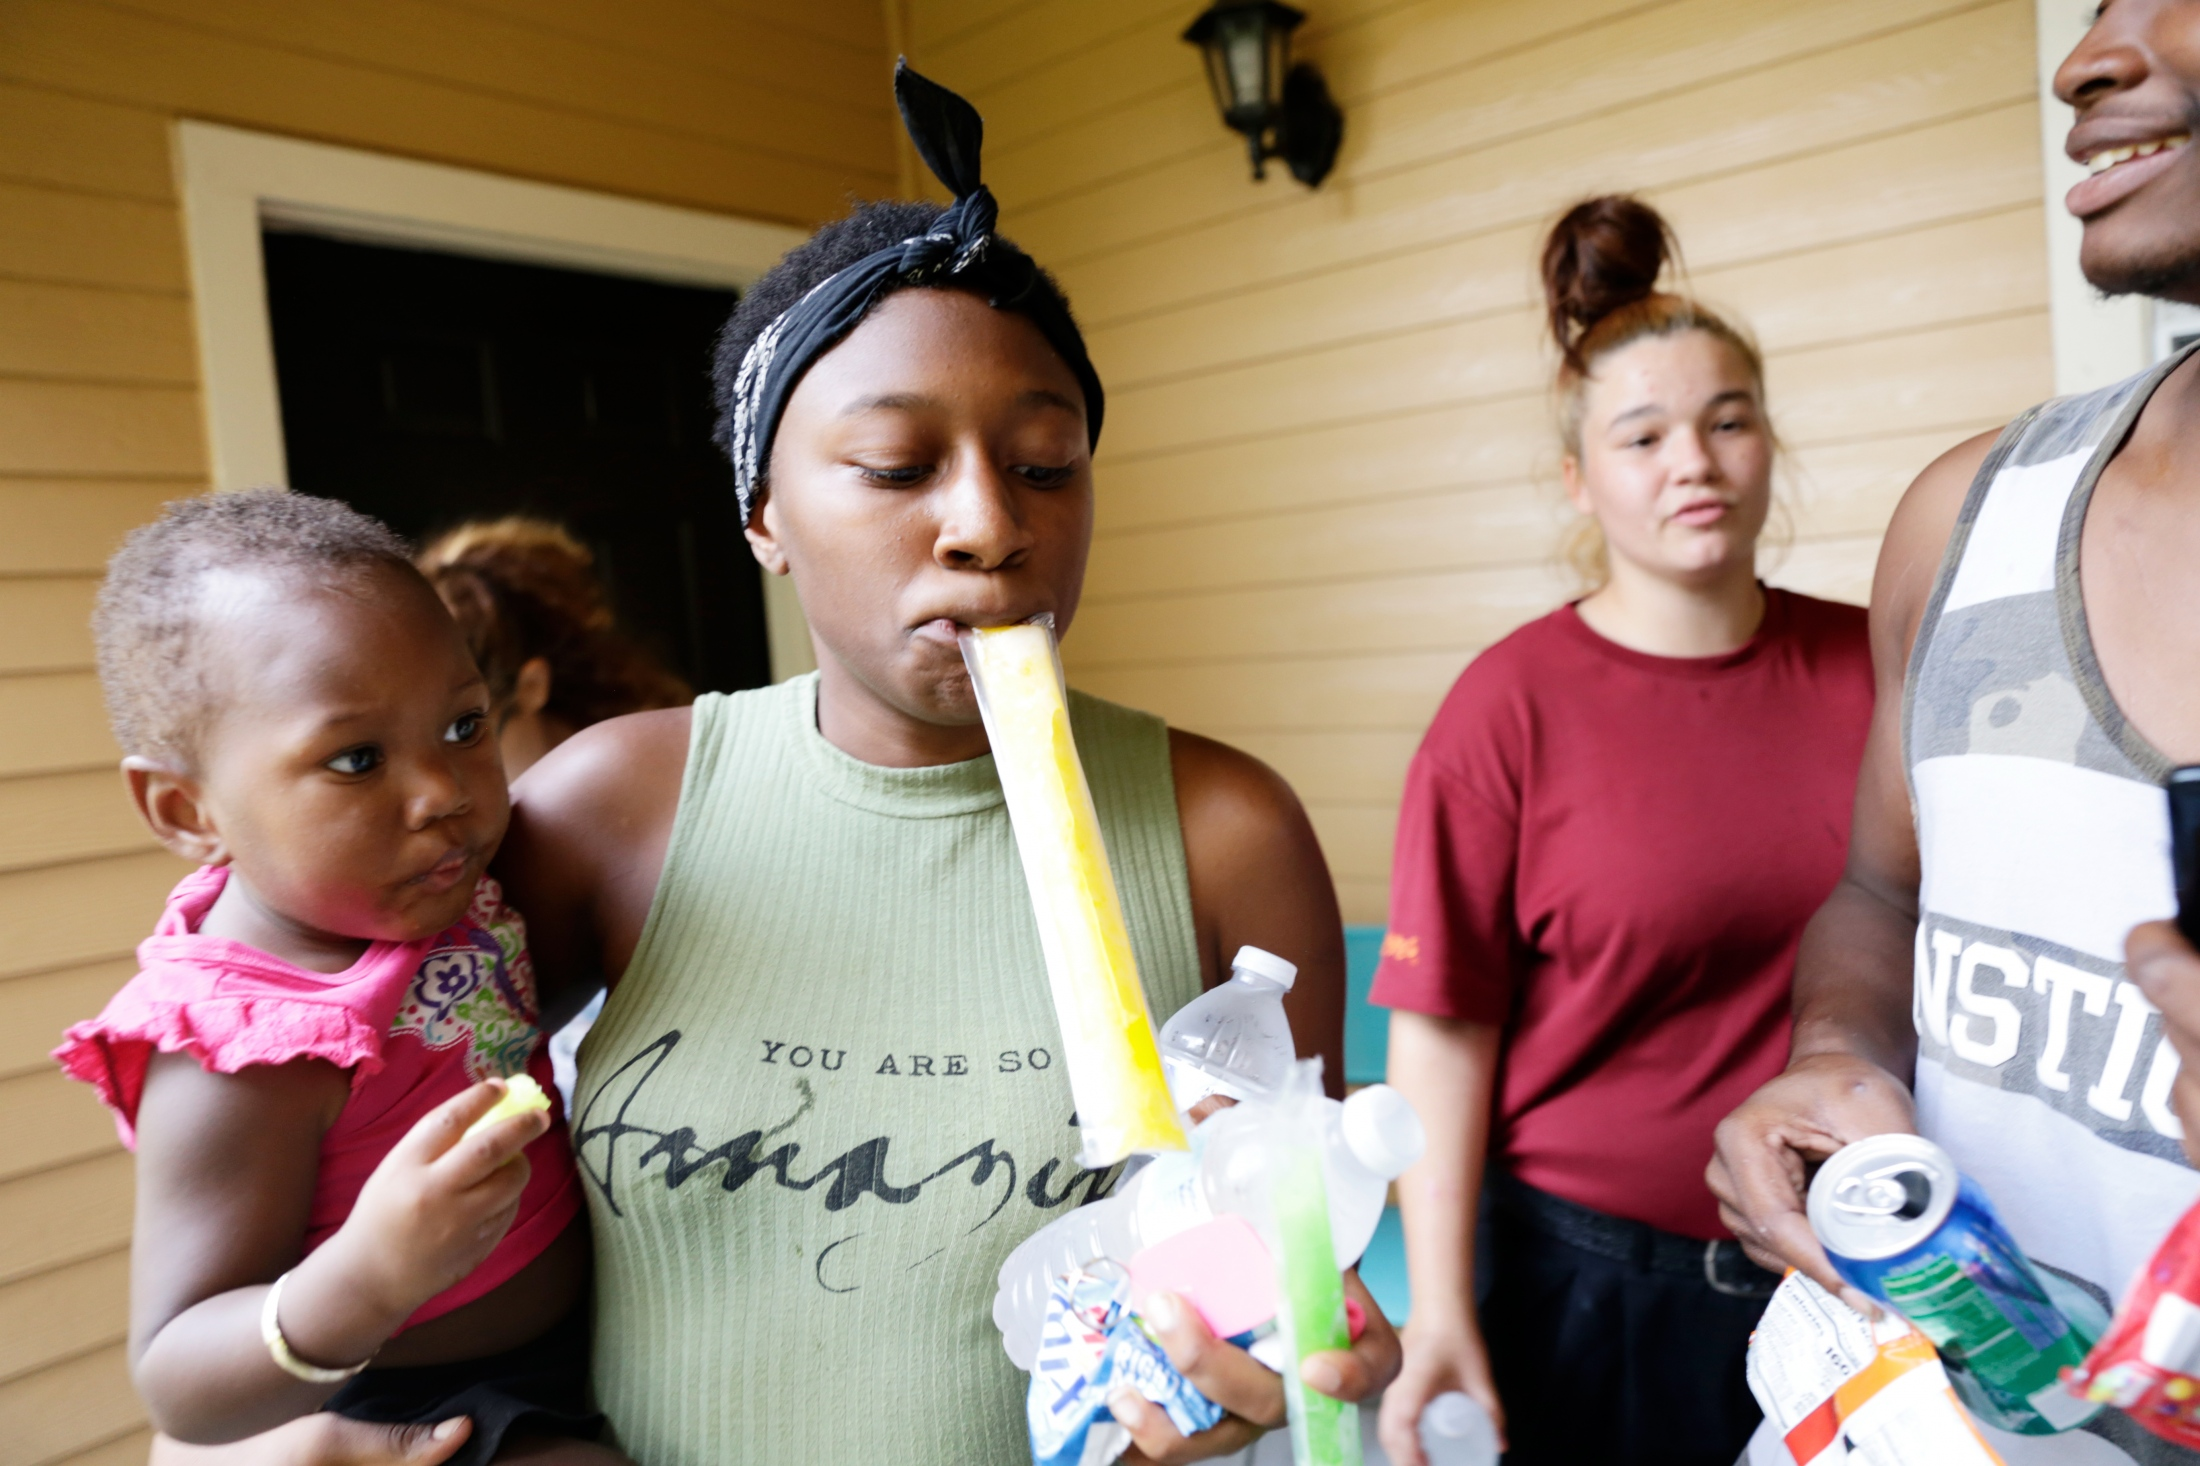 From left: Kayone Braxton, Conslyn Braxton, Jasmine Fields and Andrew Martin load up on the free snacks available while touring a model unit at The Commons, a student housing complex in Tallahassee, Fla., on Aug. 23, 2018 All are currently without a fixed address. Nightly shelter is provided by friends and co-workers, at least temporarily. Not knowing where their next meal will come from any free food and drink is taken advantage of. Fields is hoping to move into The Commons with help from her Capital City Youth Services caseworker.